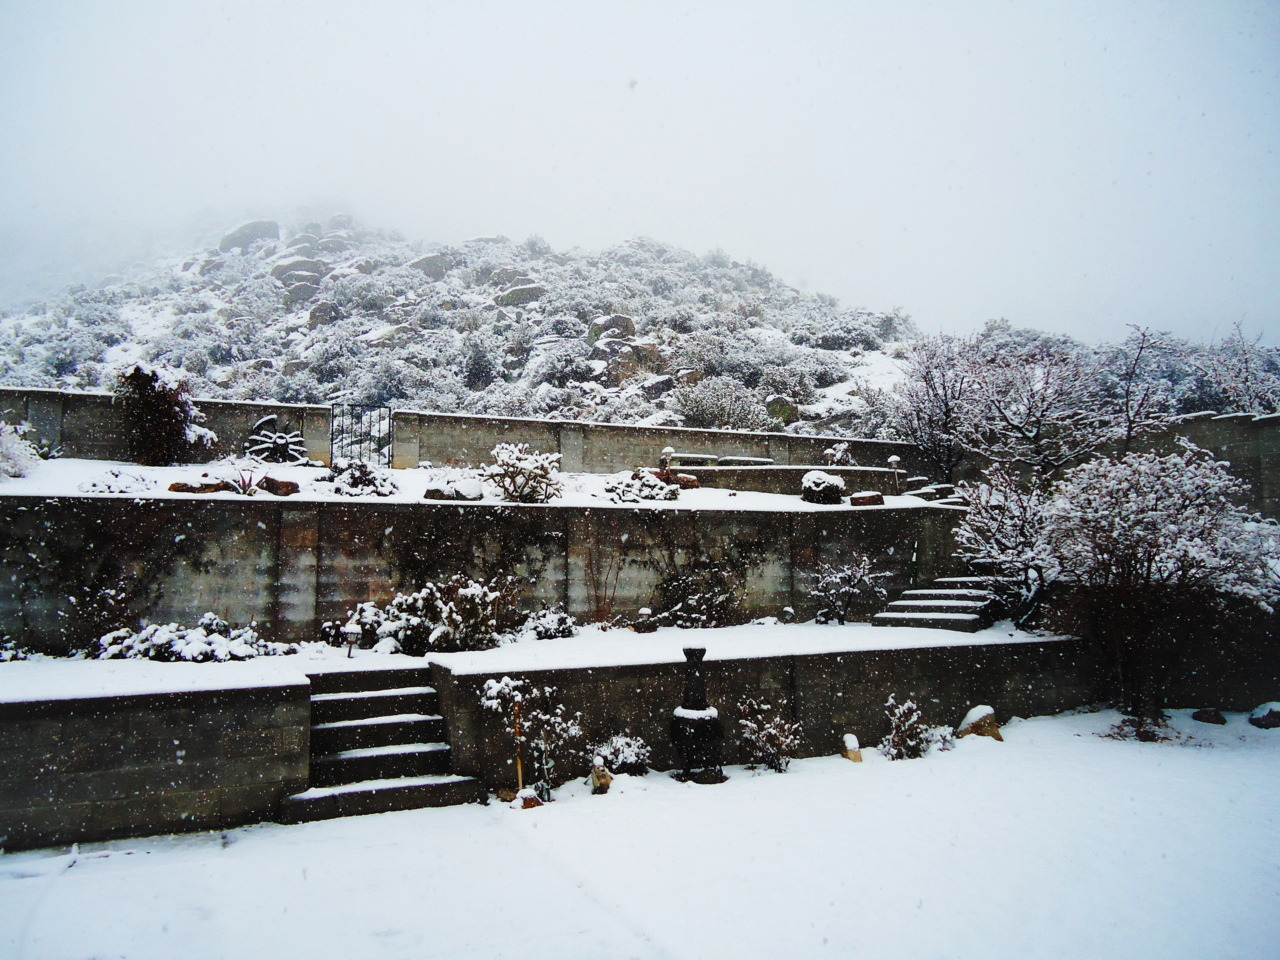 new-mexico:  This is my backyard. As you can see, it's snowing!